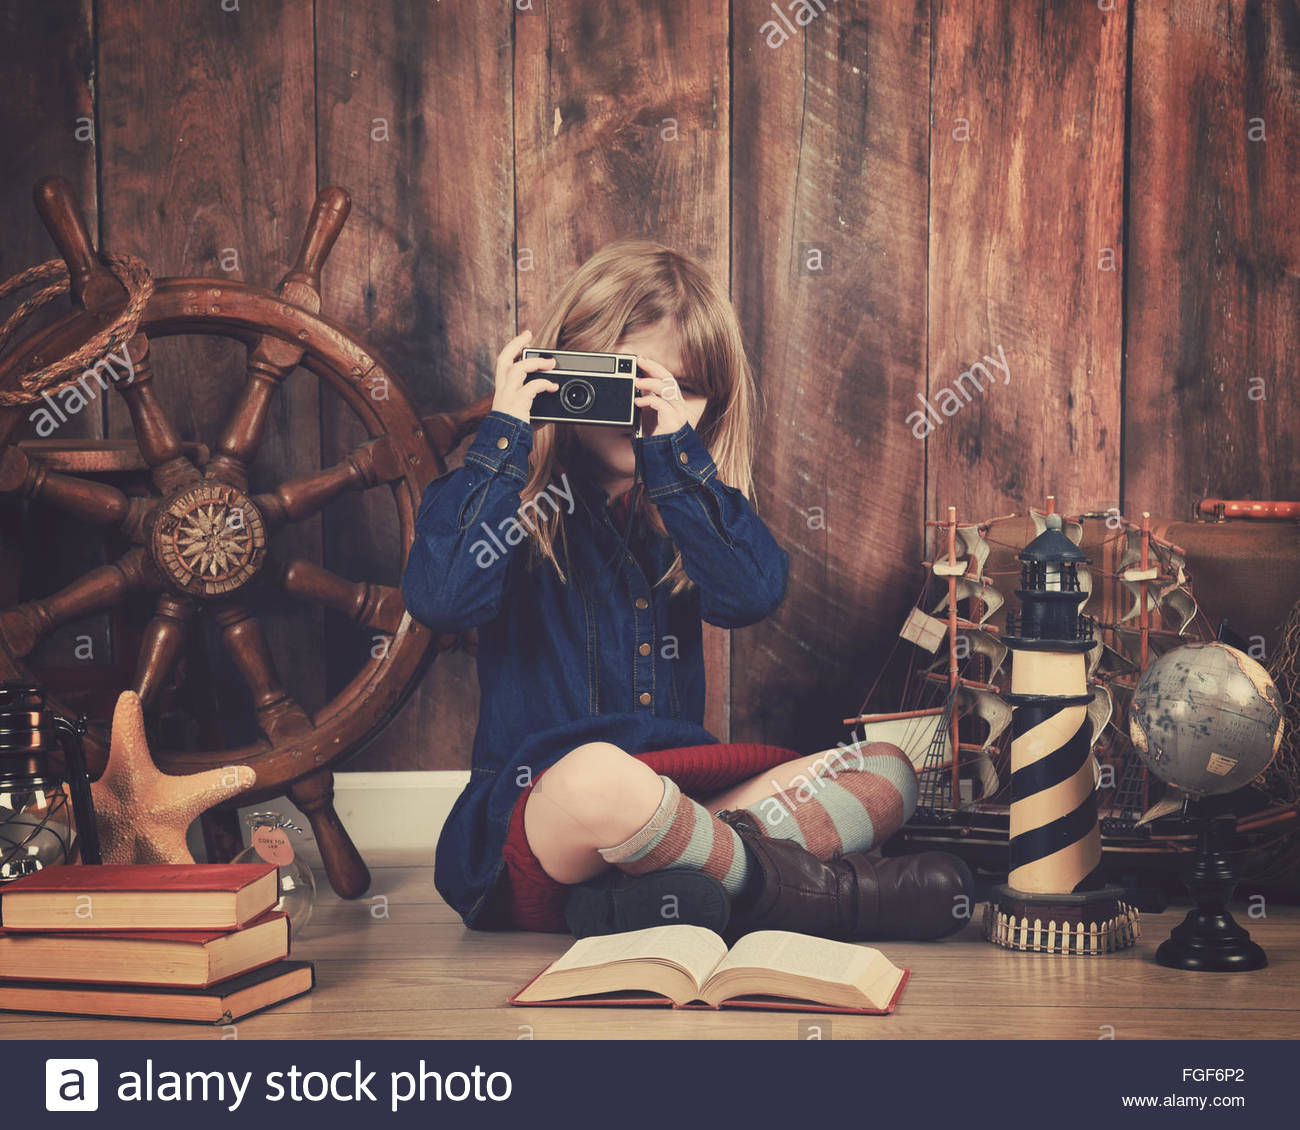 A little child is holding an old retro camera with travel objects in the background for a vacation art concept. - Stock Image